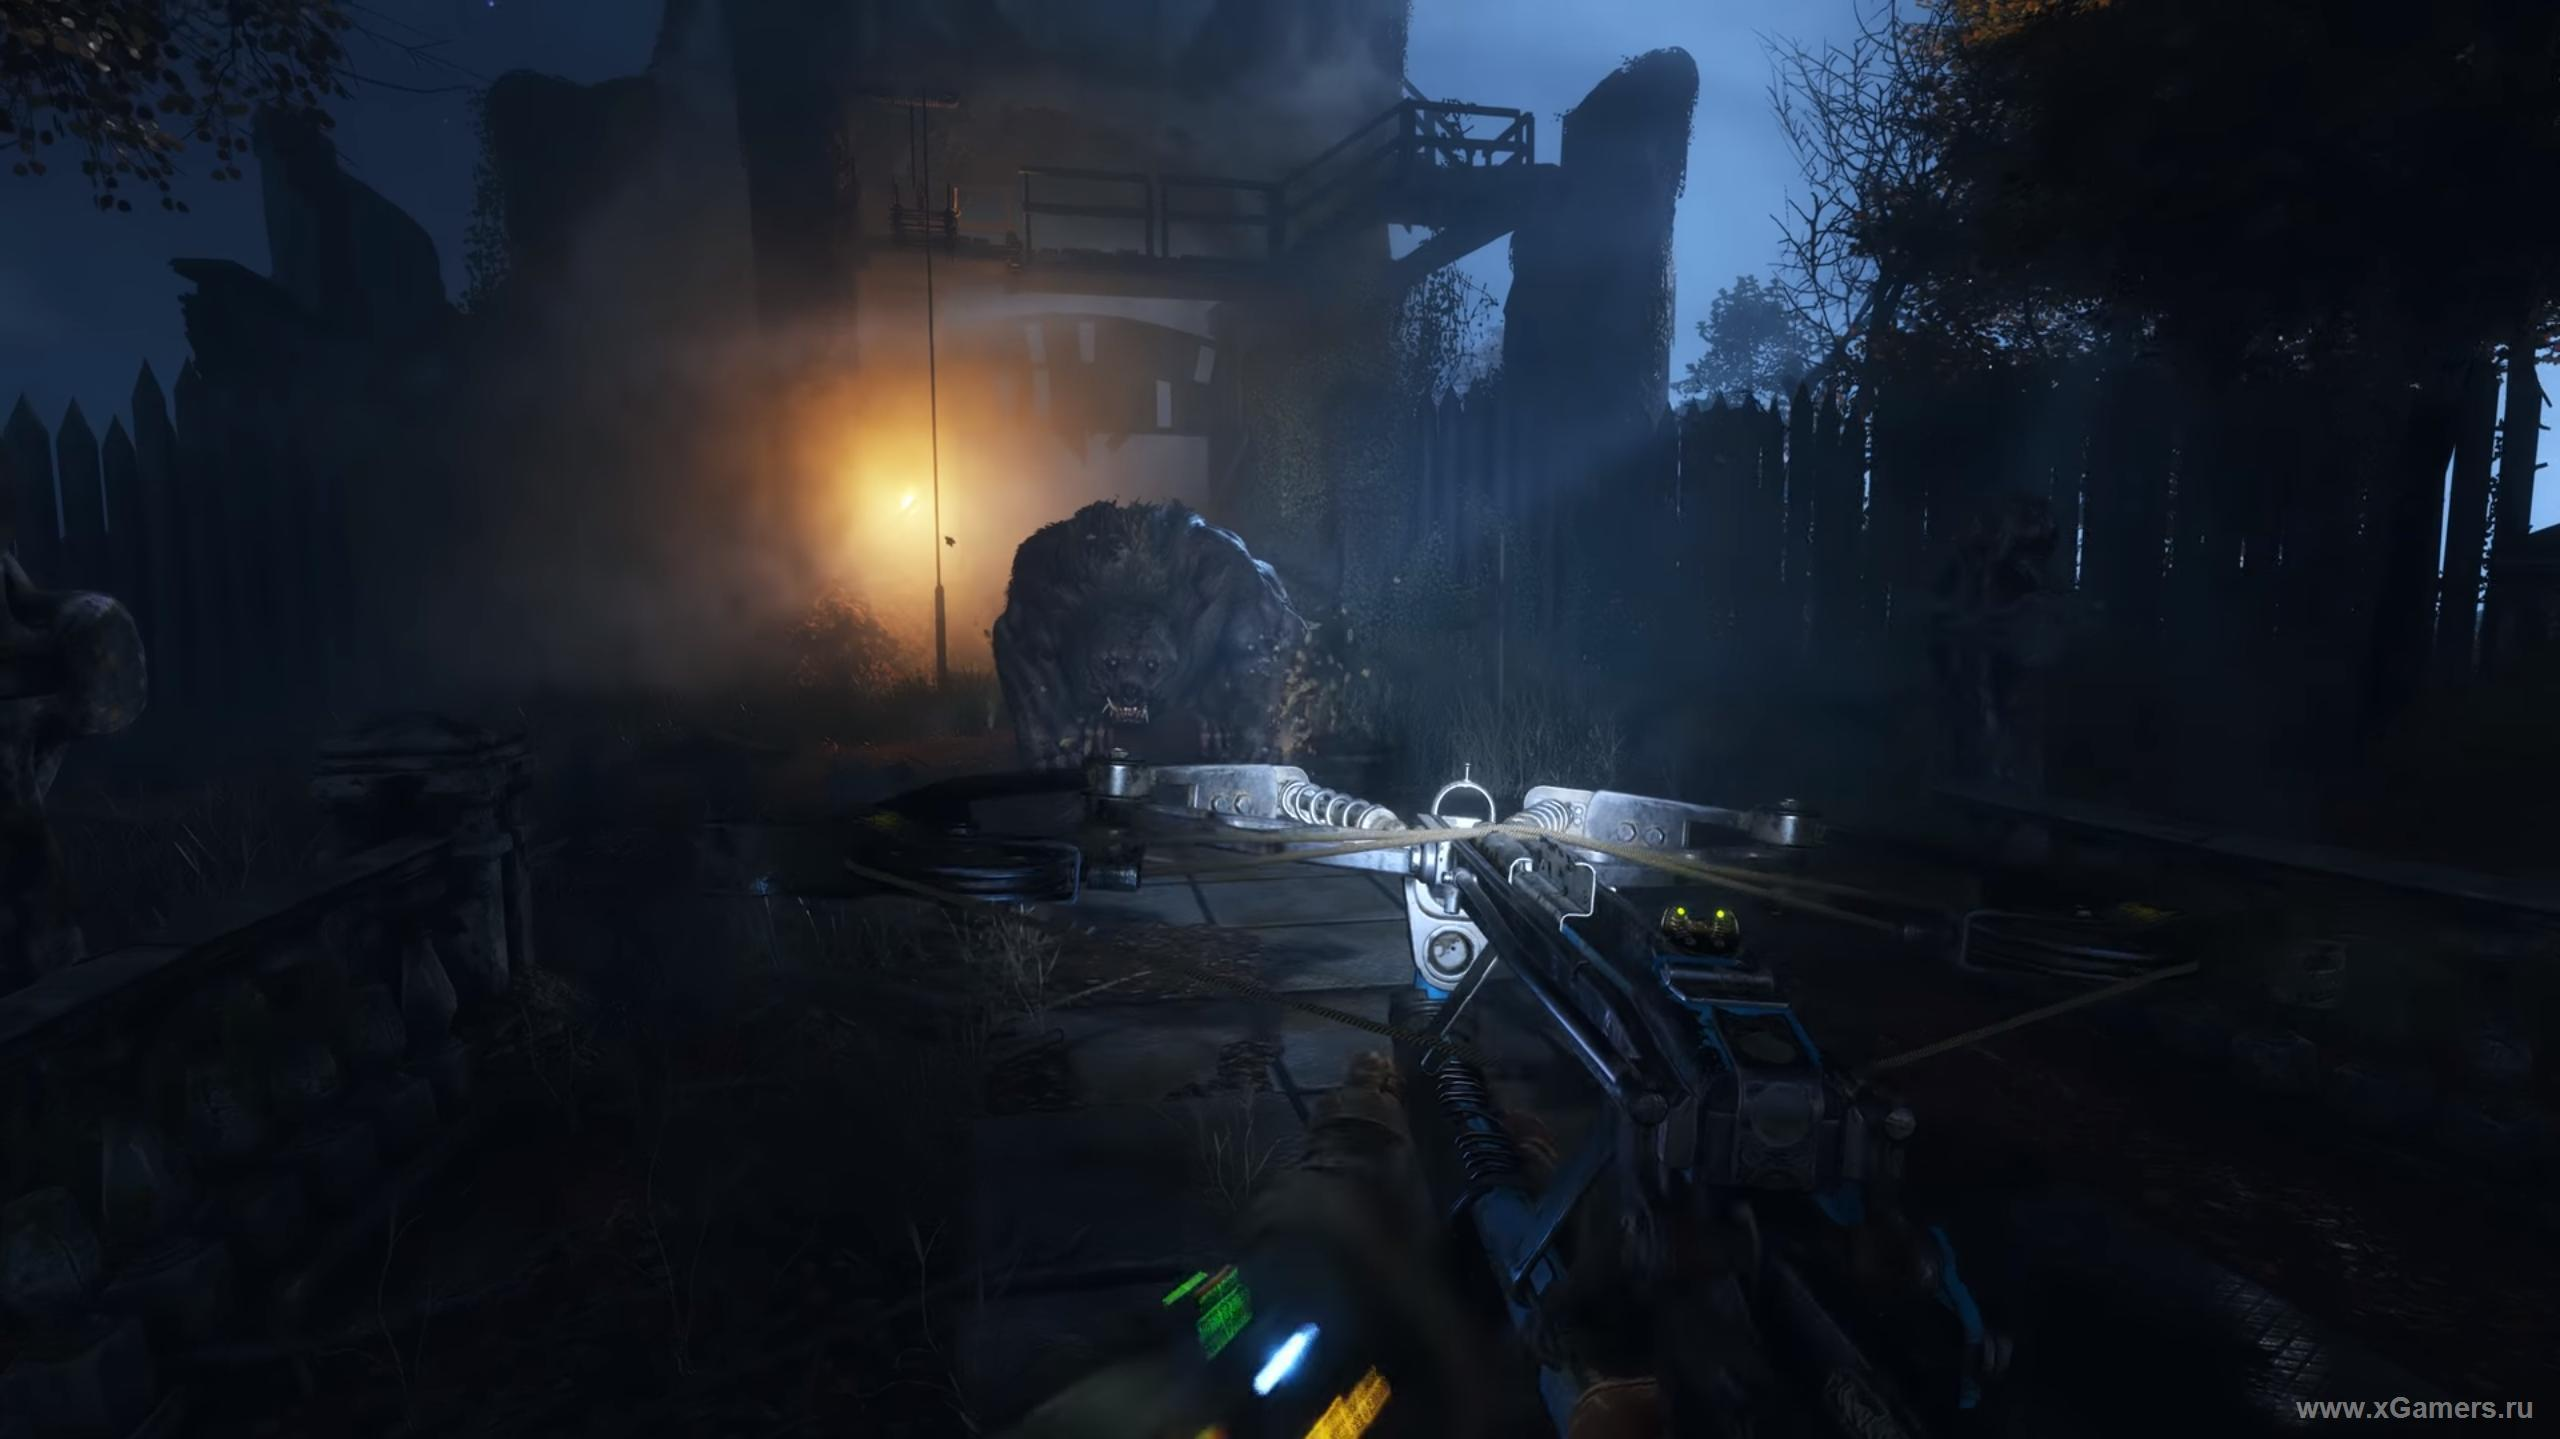 Battle with a bear in the game Metro Exodus